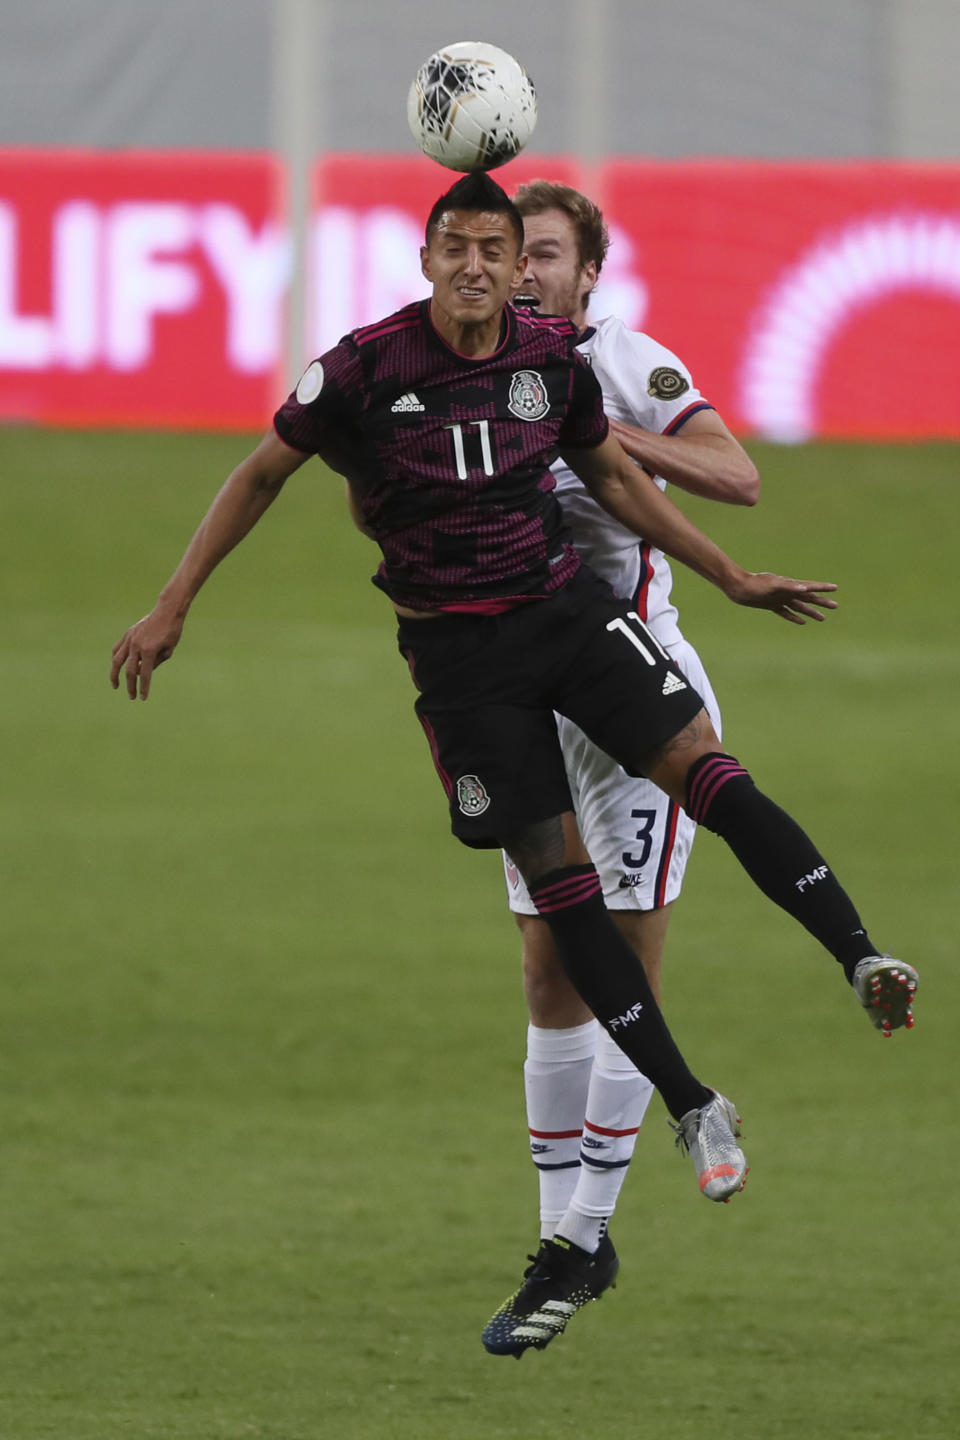 Mexico's Roberto Alvarado (11) heads the ball challenged by United States' Henry Kessler during a Concacaf Men's Olympic Qualifying championship soccer match in Guadalajara, Mexico, Wednesday, March 24, 2021. (AP Photo/Fernando Llano)